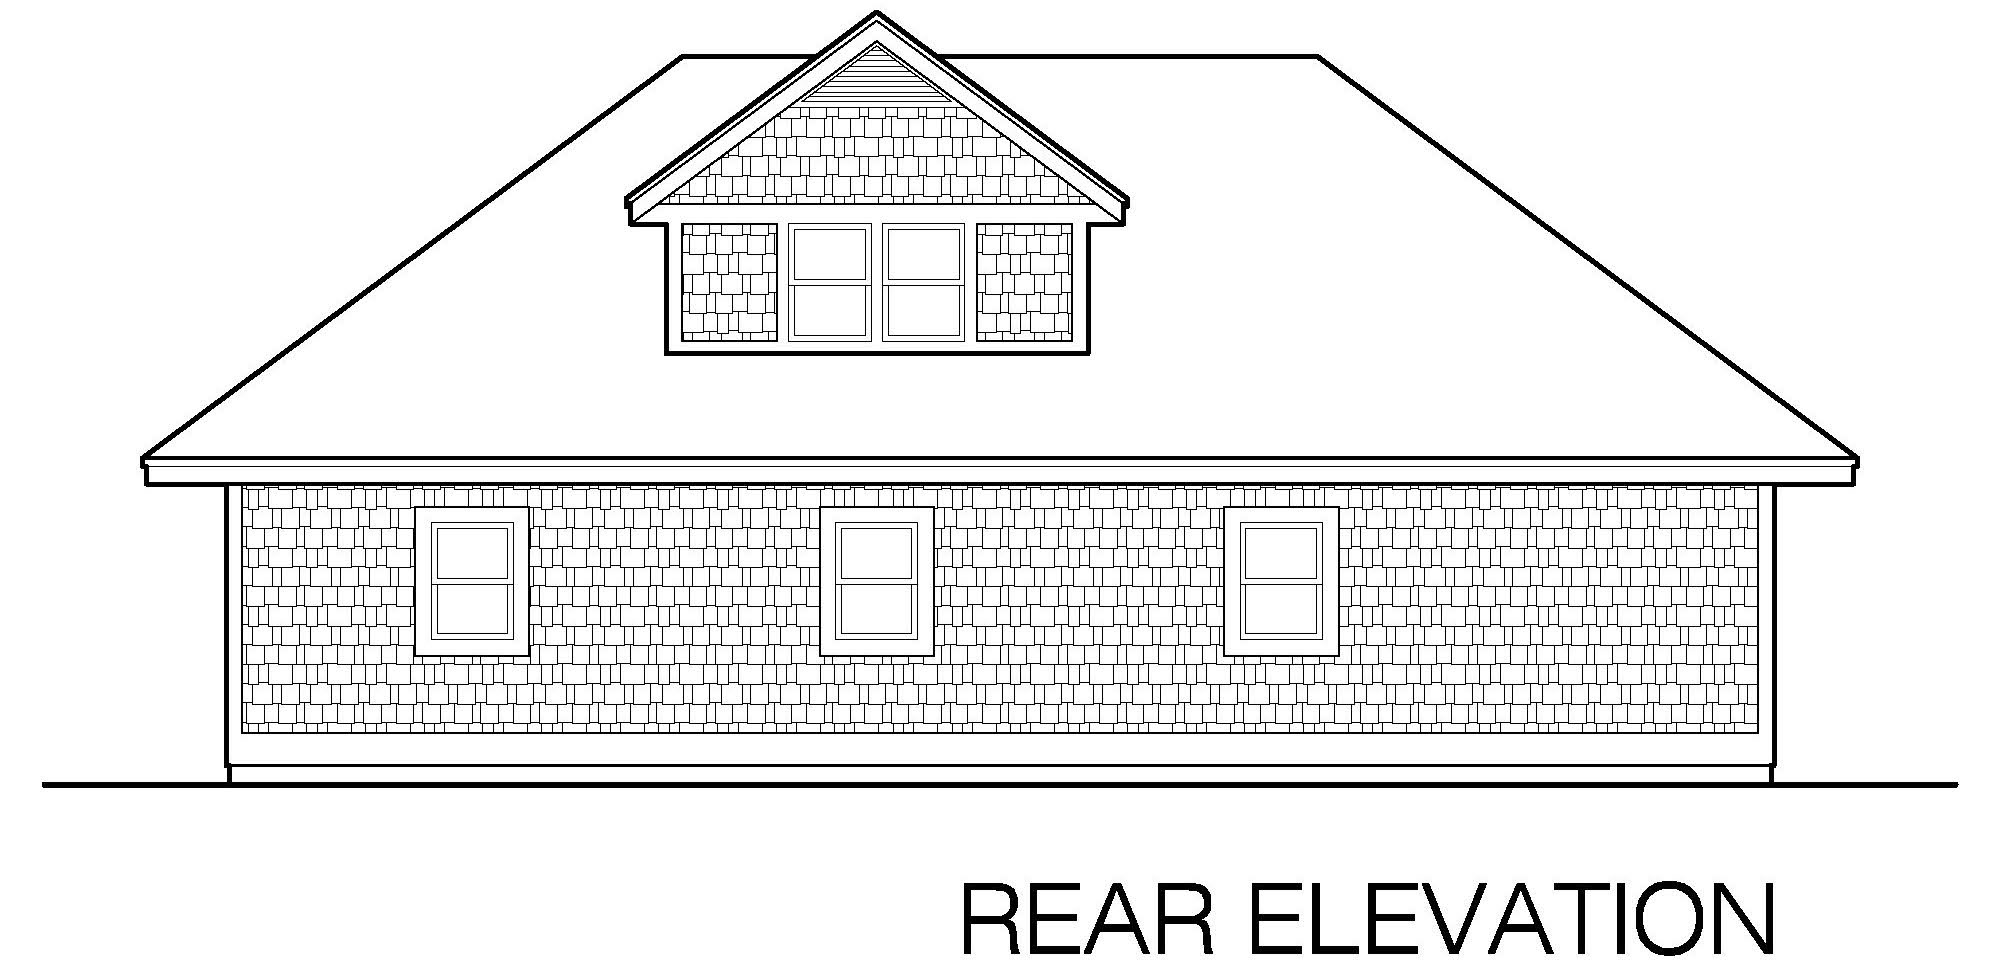 001-Shingle-Garage-05-Rear-Elevation Small Southern Home Plans With Separate Garage on home plans with carport, home plans with fireplace, home plans with porches detached garages, home plans with family room, home plans with laundry, home plans with 4 bedrooms, home plans with conservatory, home plans with den, home plans with barn,